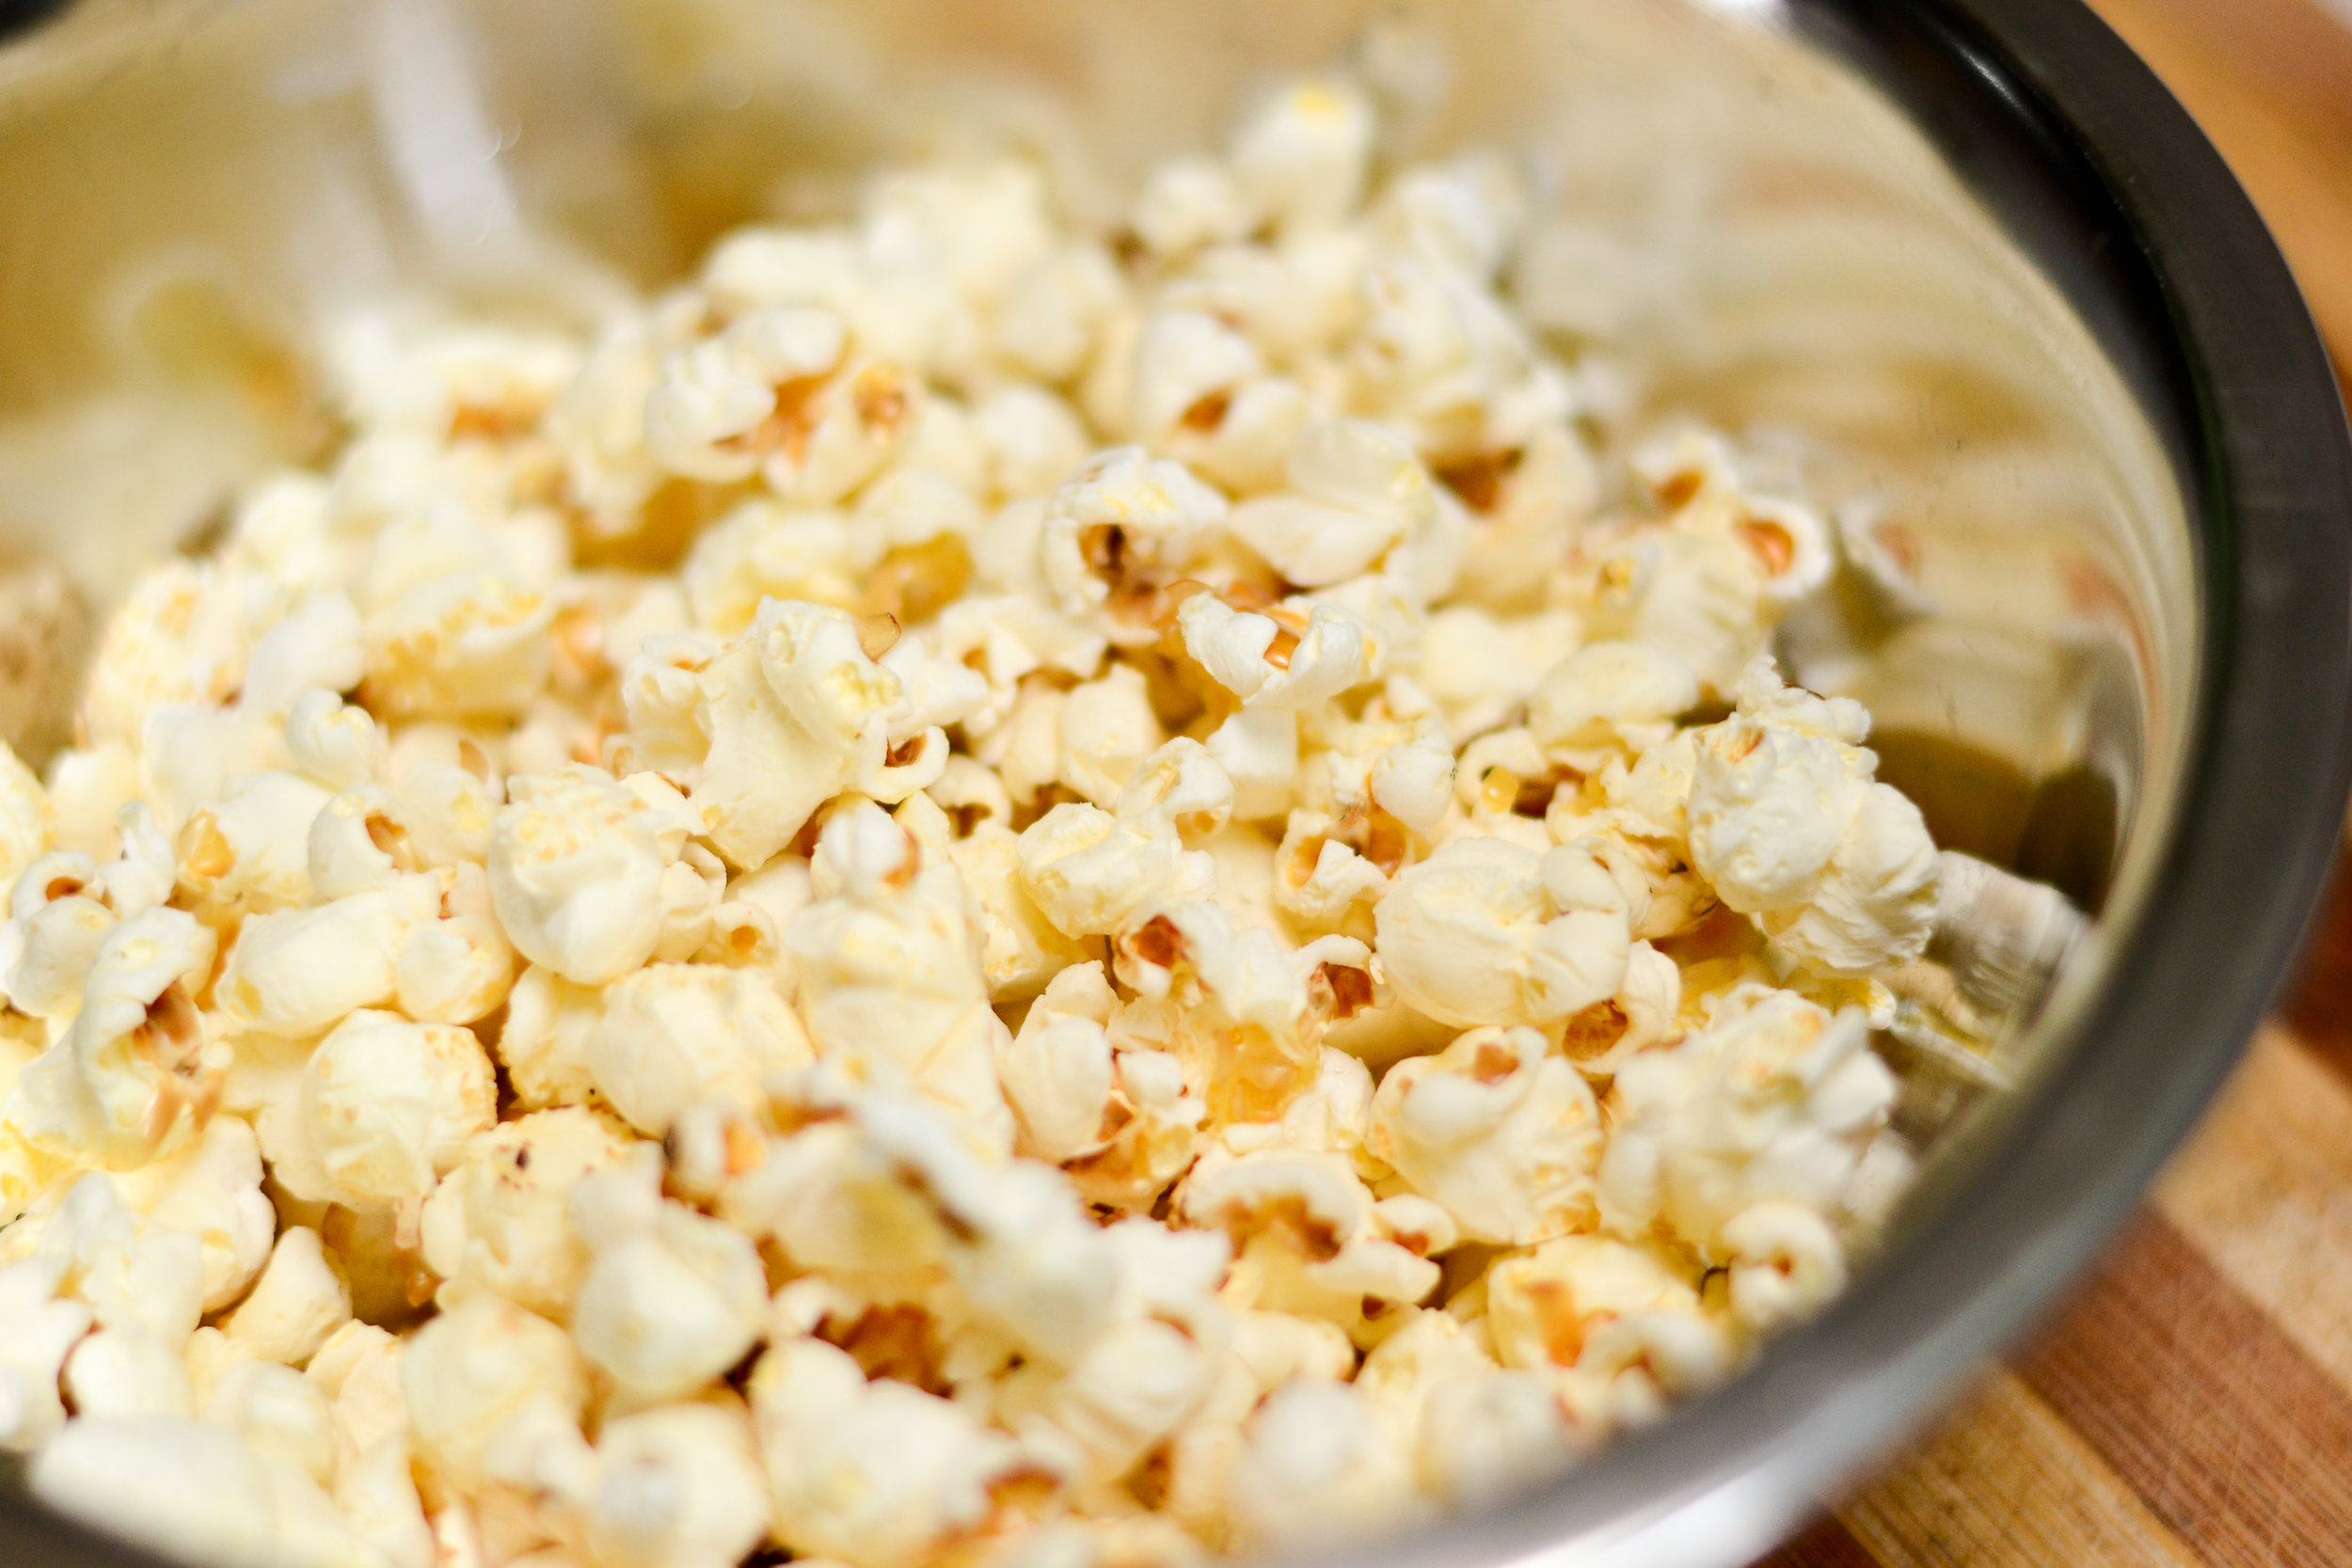 Make-Popcorn-Old-School-Way-Step-9.jpg